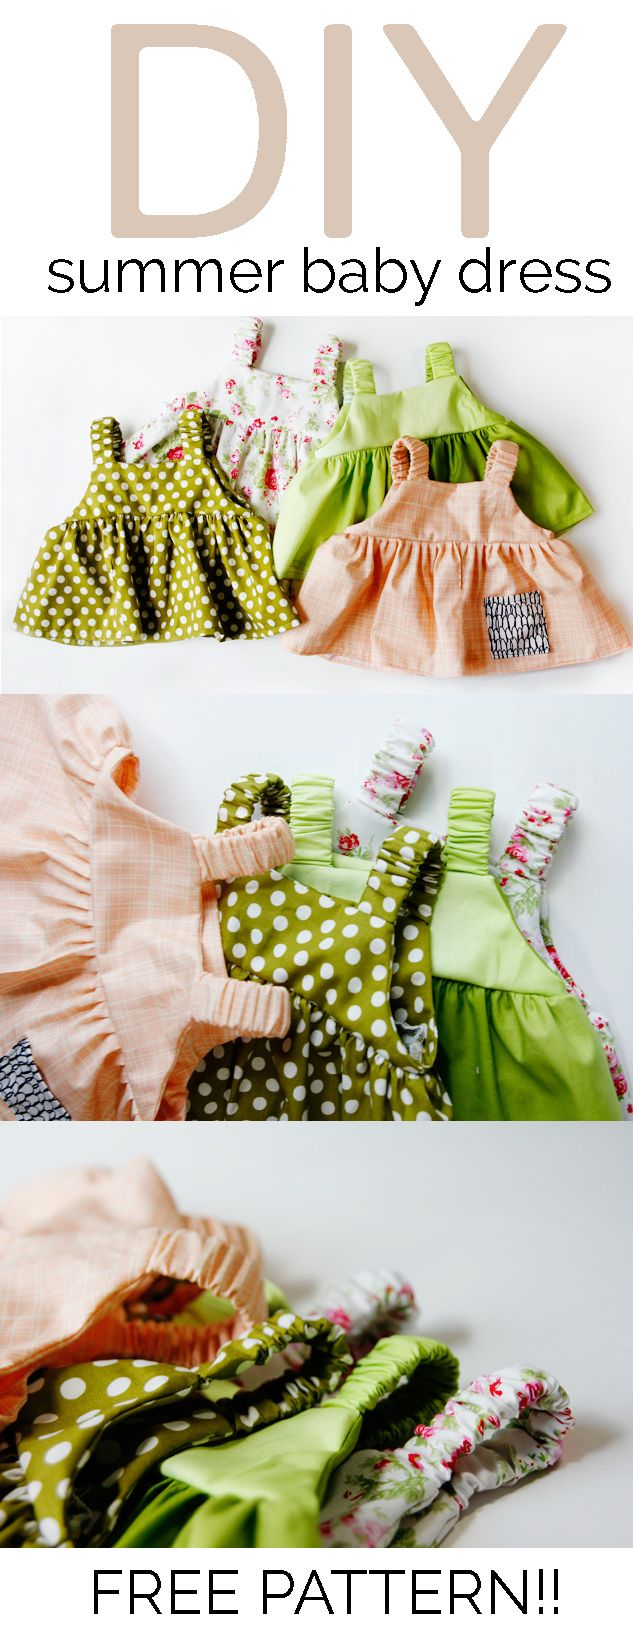 easy baby dress pattern for summer - great for toddlers too!